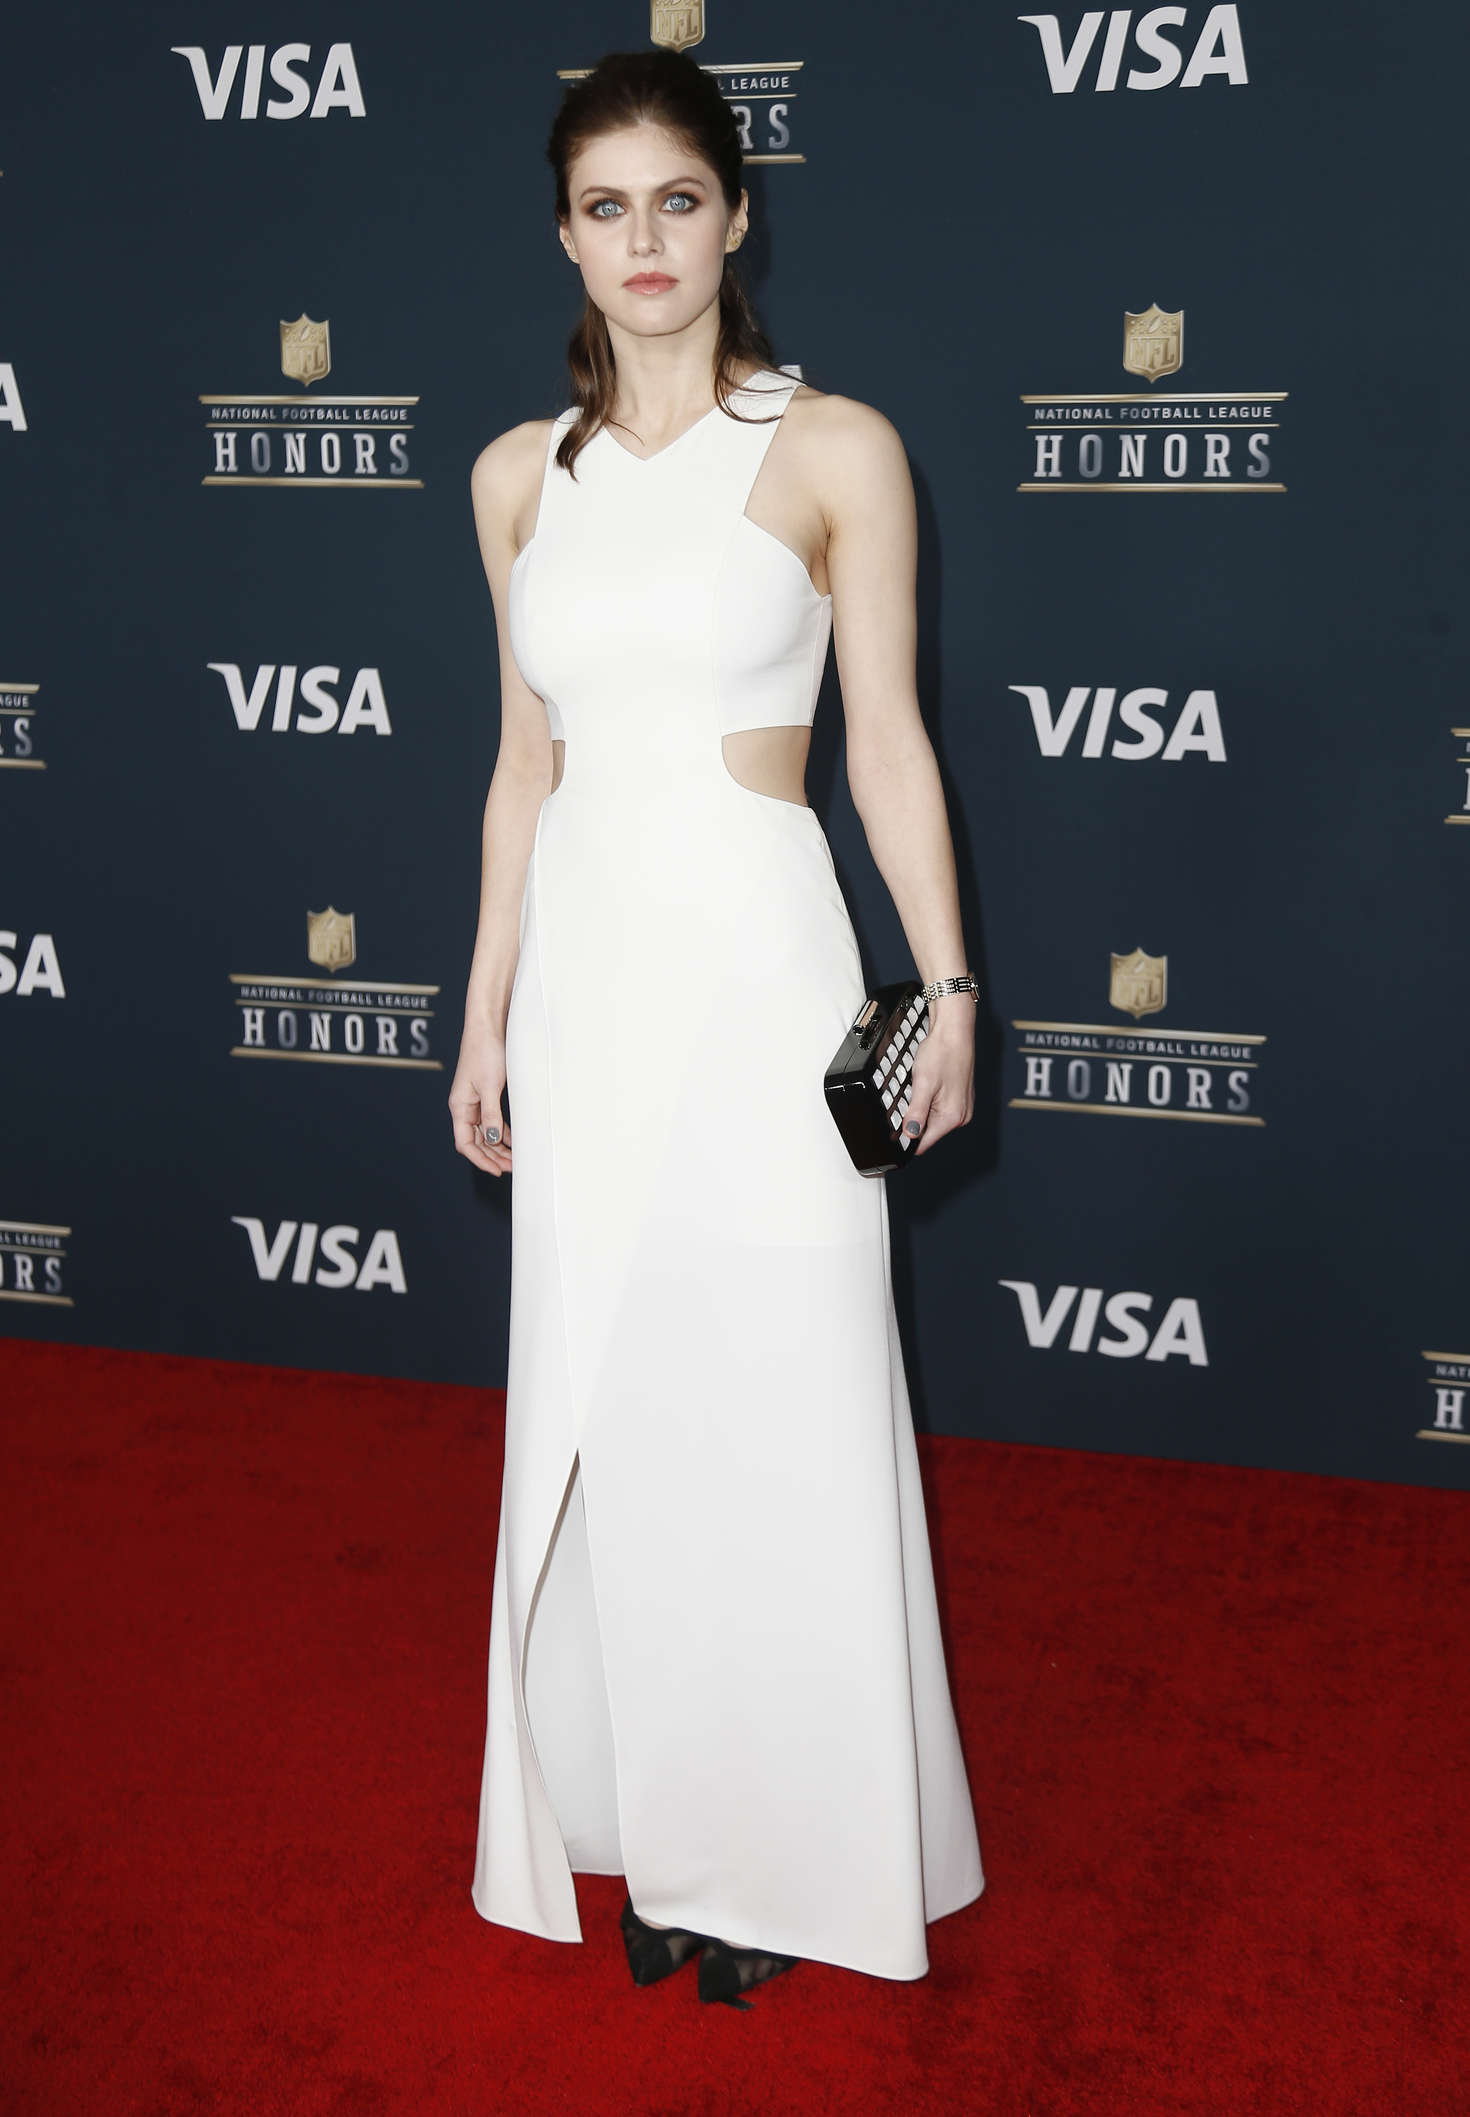 Alexandra Daddario - 2017 NFL Honors in Houston